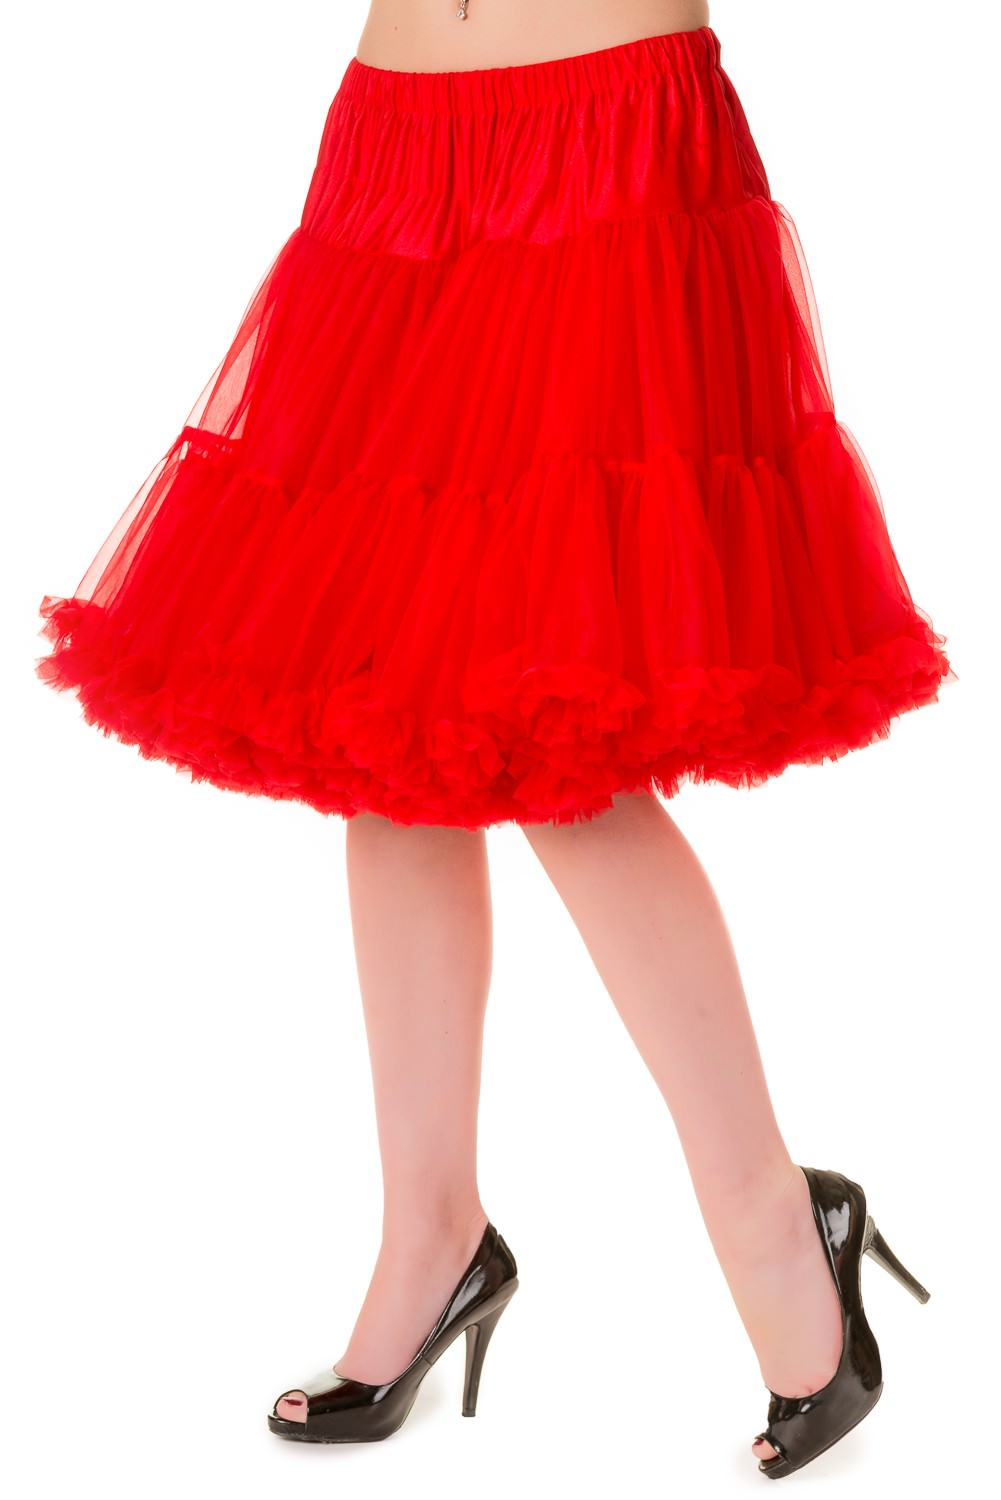 Banned Retro 50s Walkabout Red Petticoat